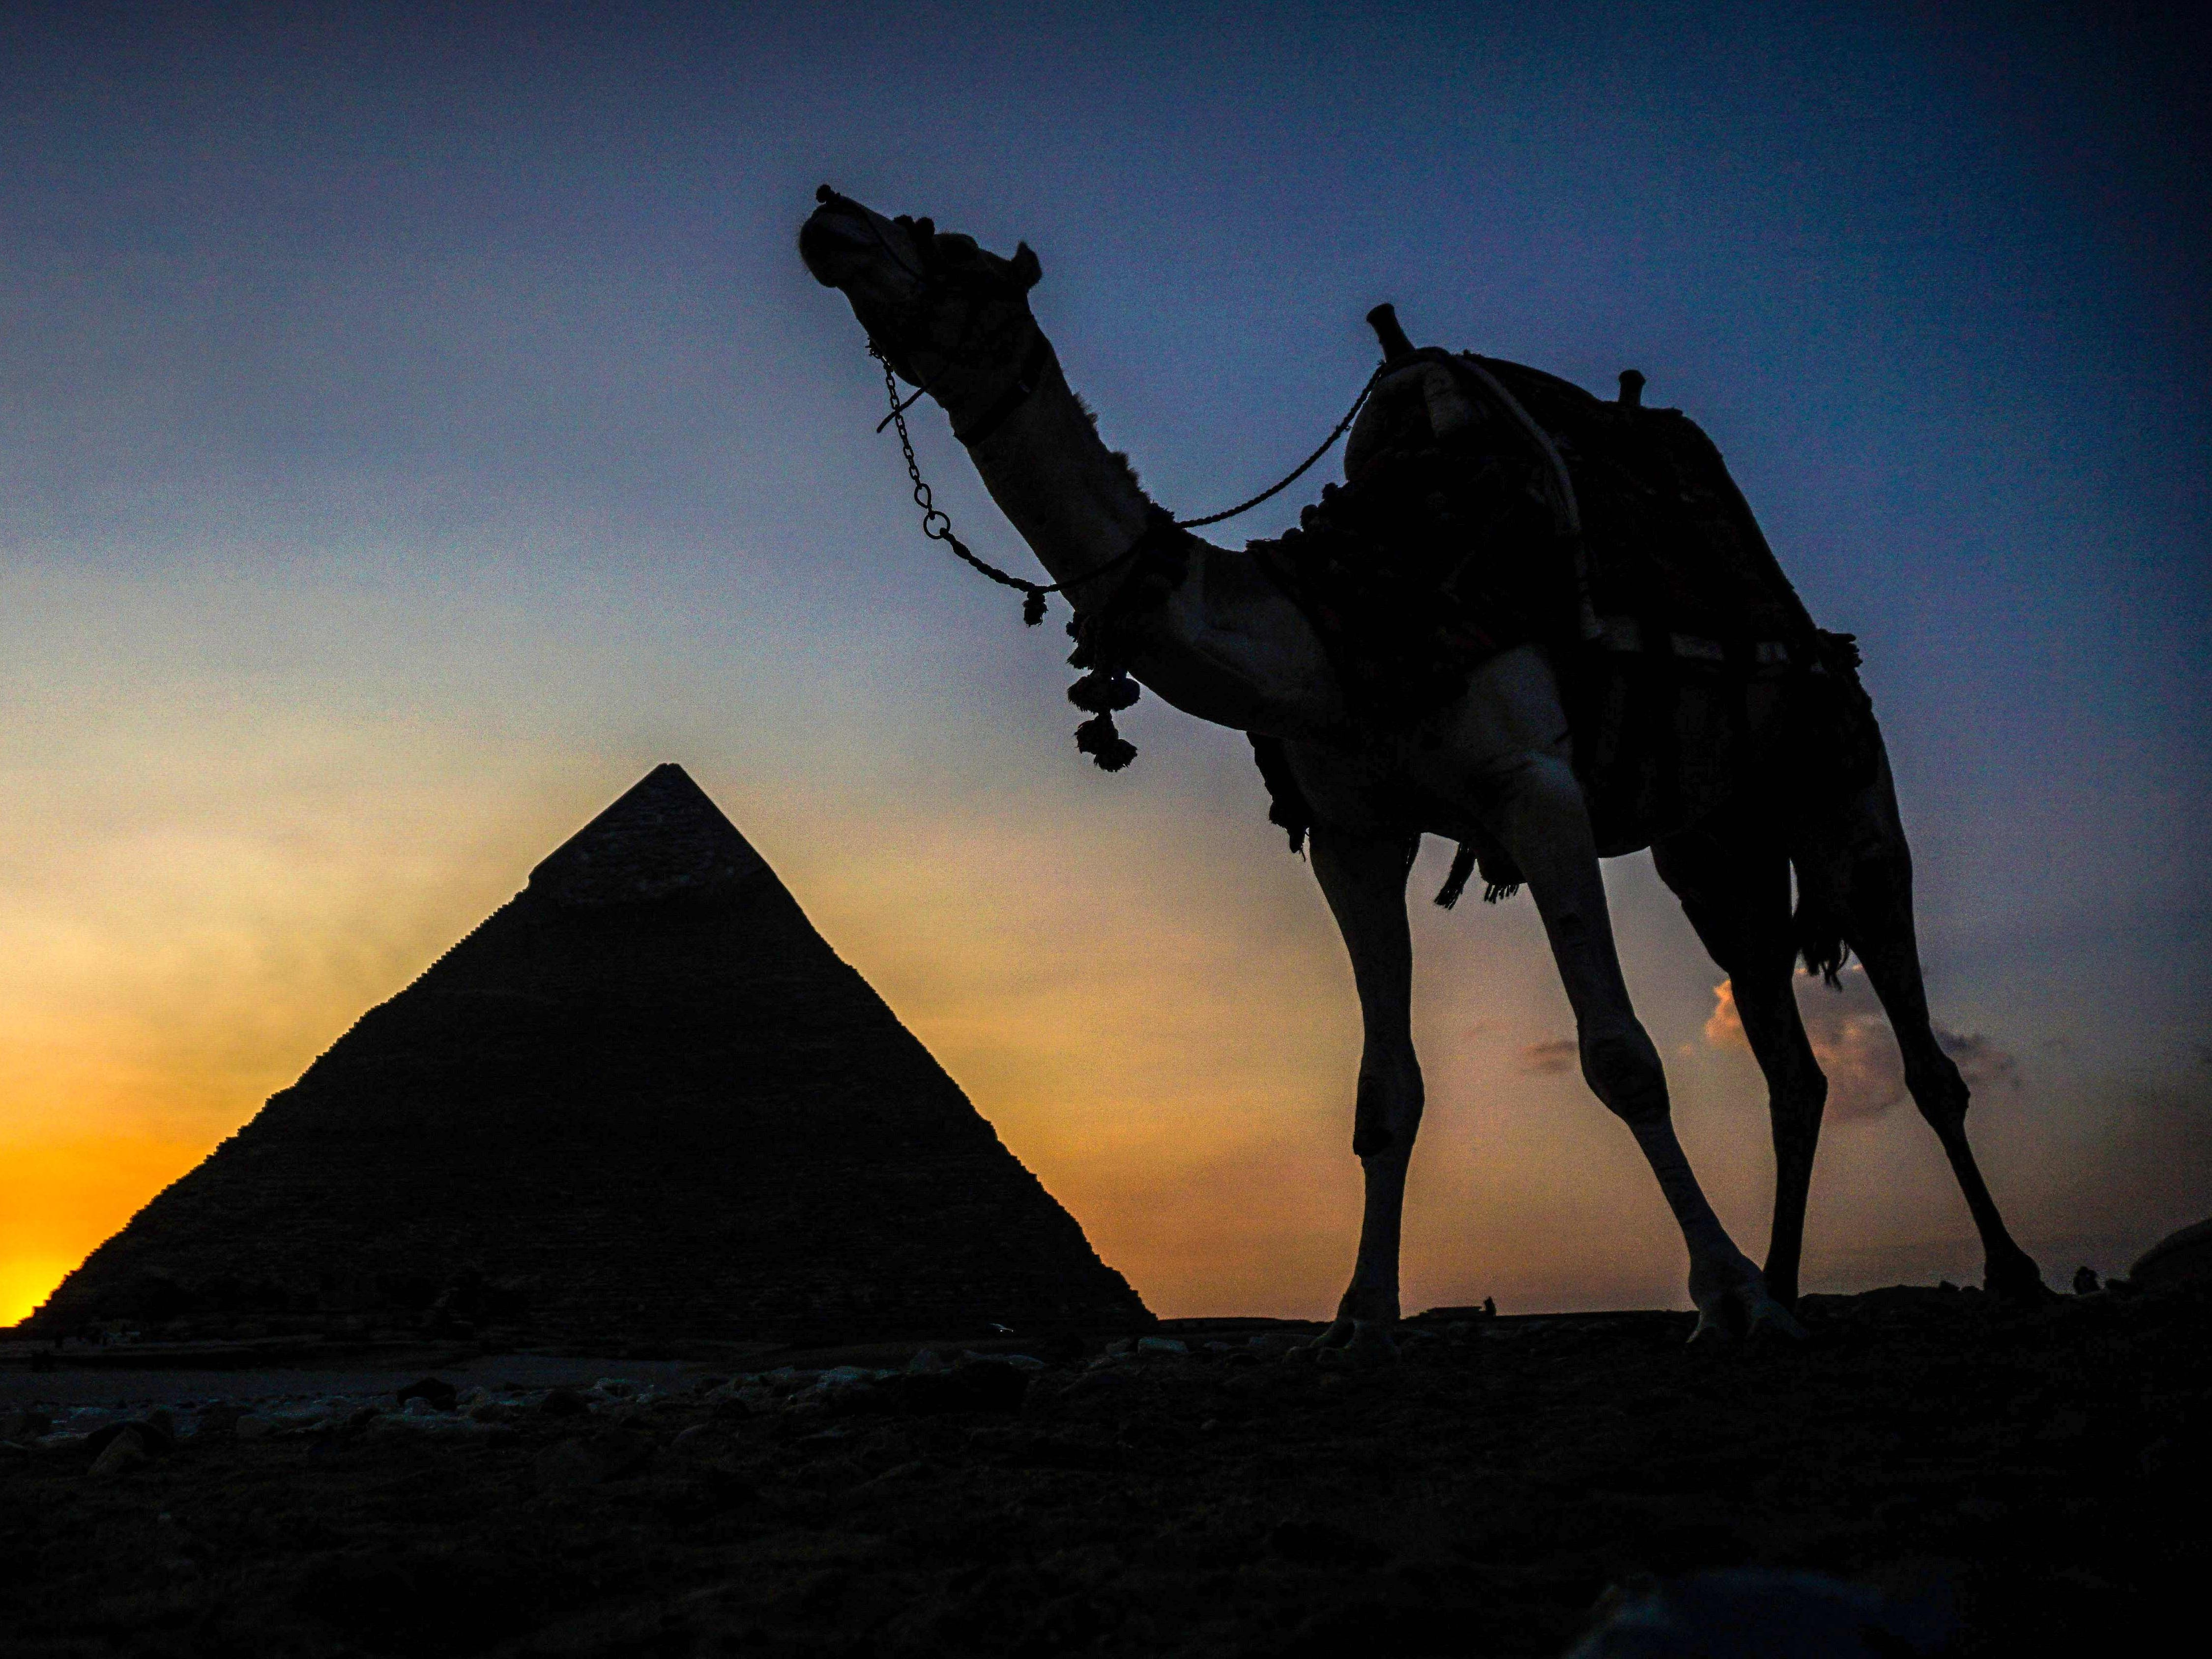 A camel walks past the pyramid of Khafre (also known as Chephren) at the Giza pyramids necropolis on the southwestern outskirts of the Egyptian capital Cairo on Dec. 21, 2018.